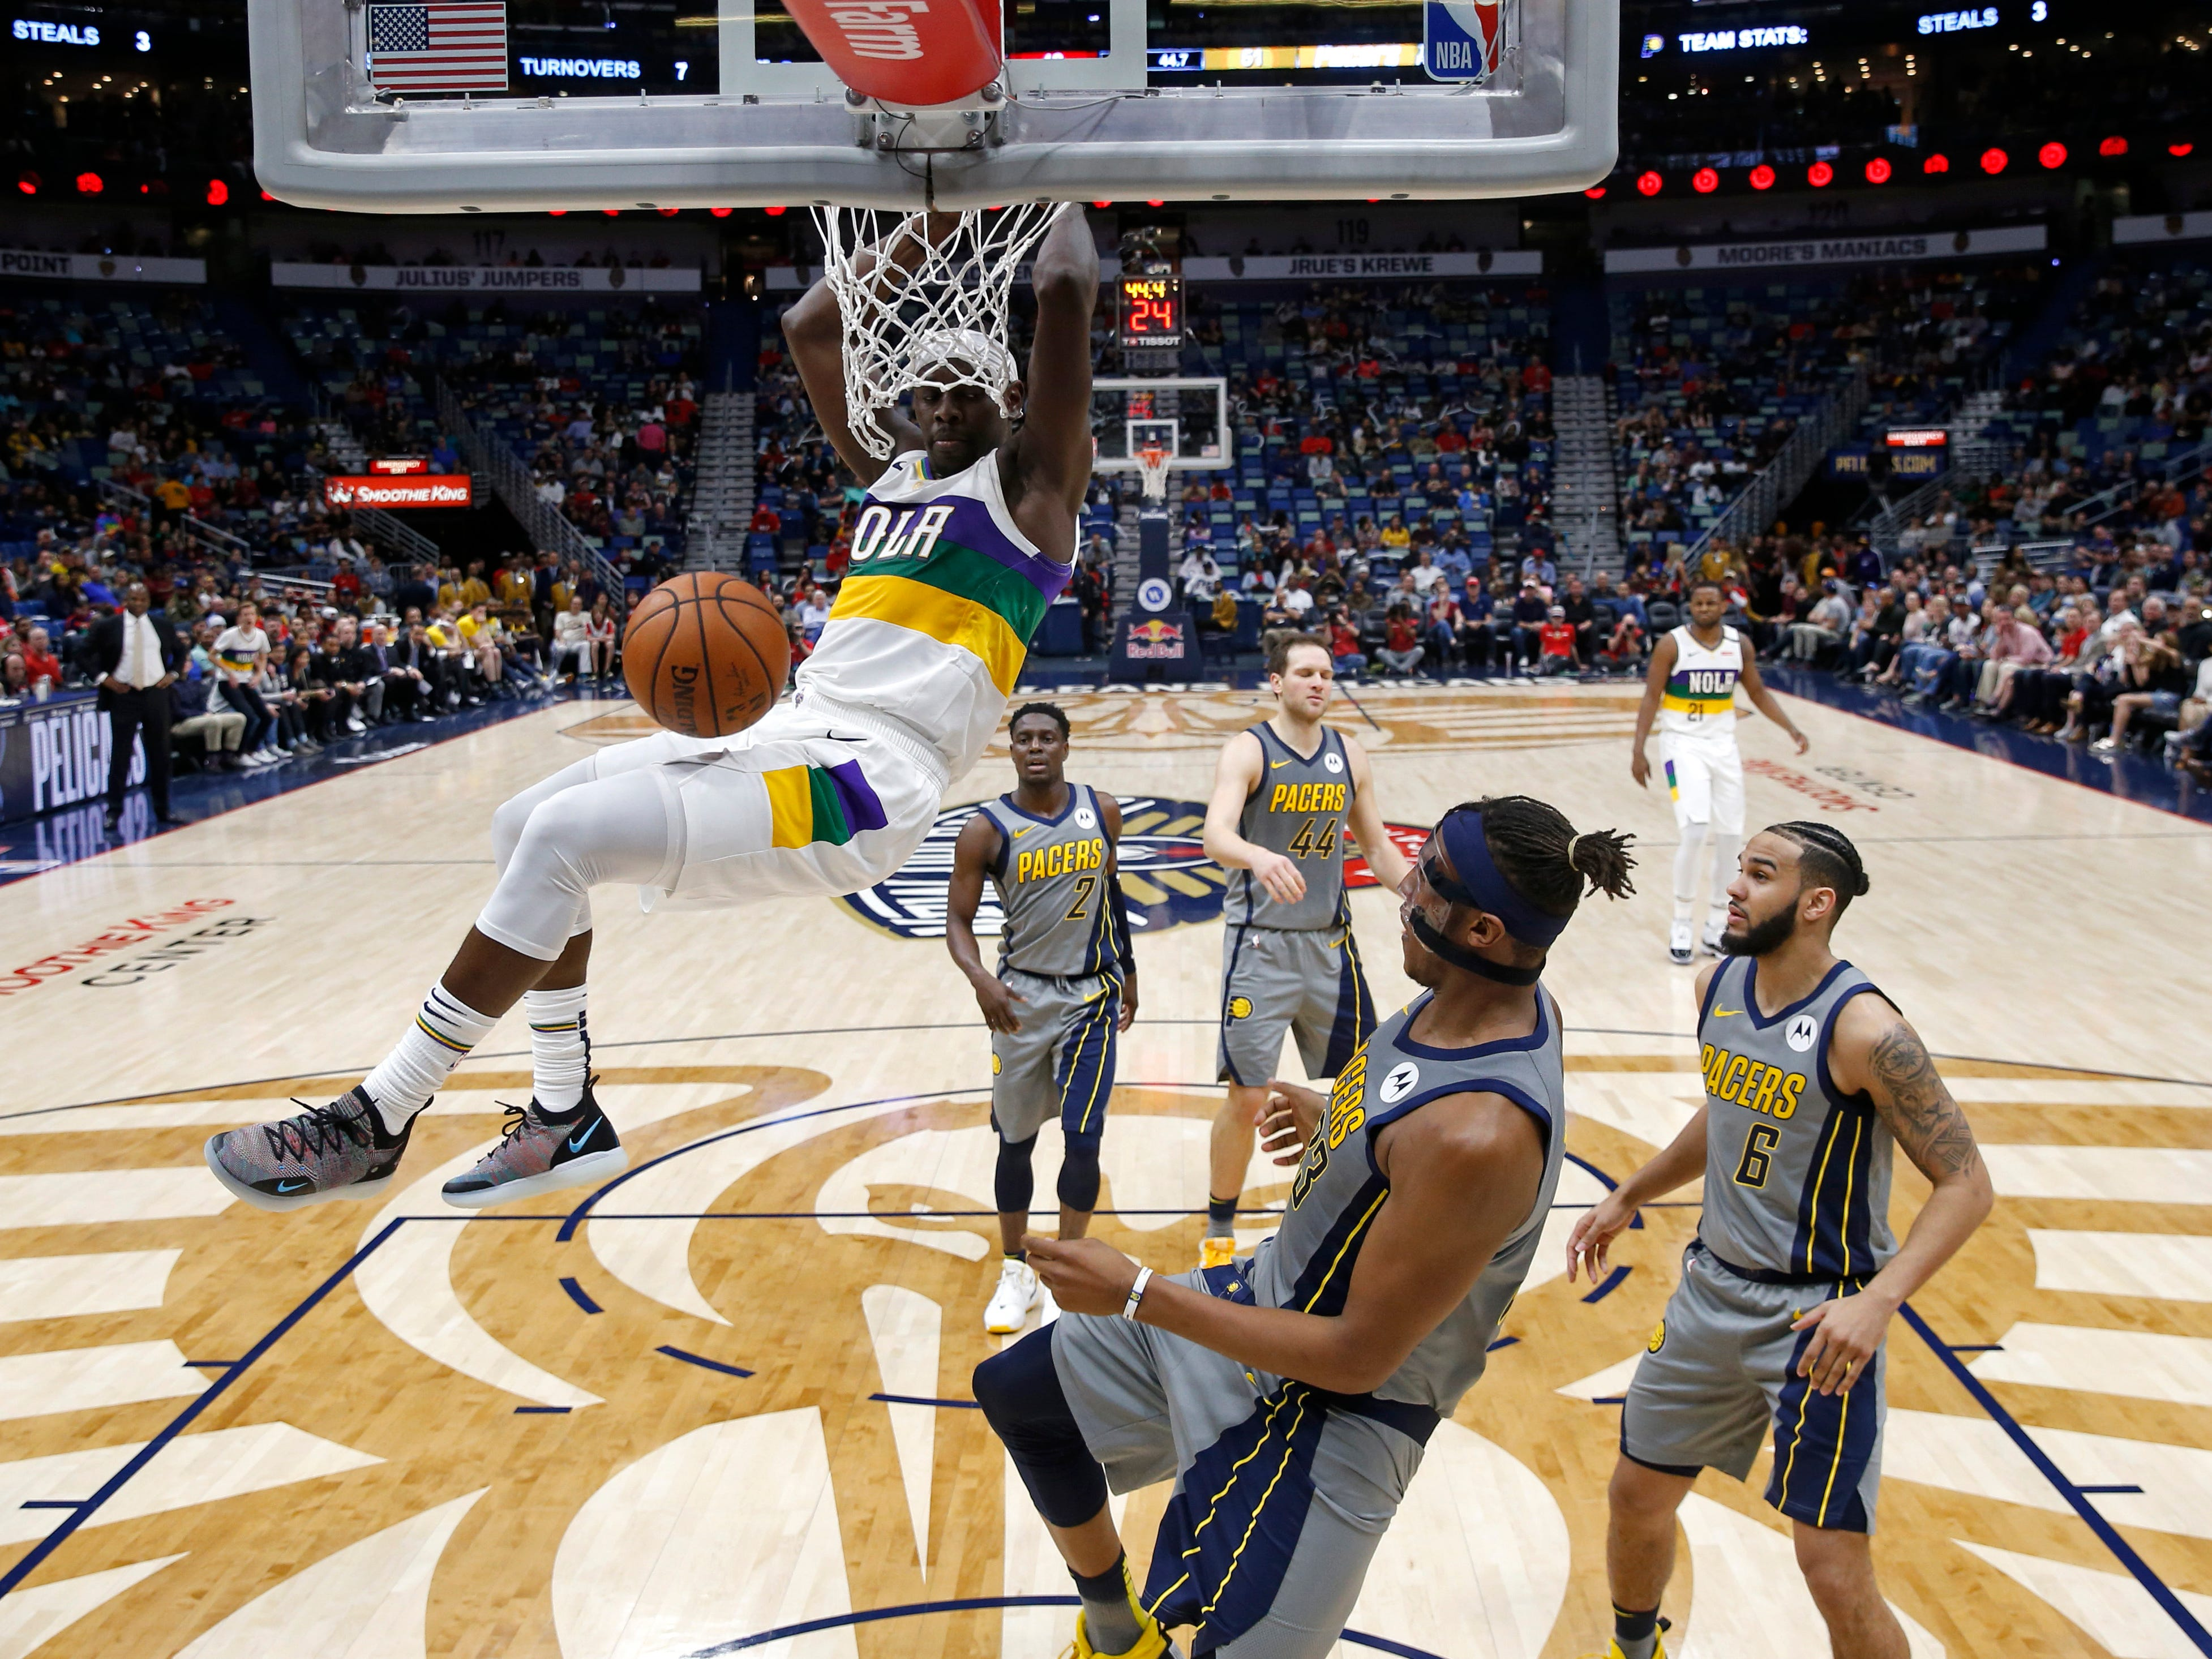 New Orleans Pelicans guard Jrue Holiday slam dunks in the first half of an NBA basketball game against the Indiana Pacers in New Orleans, Monday, Feb. 4, 2019.